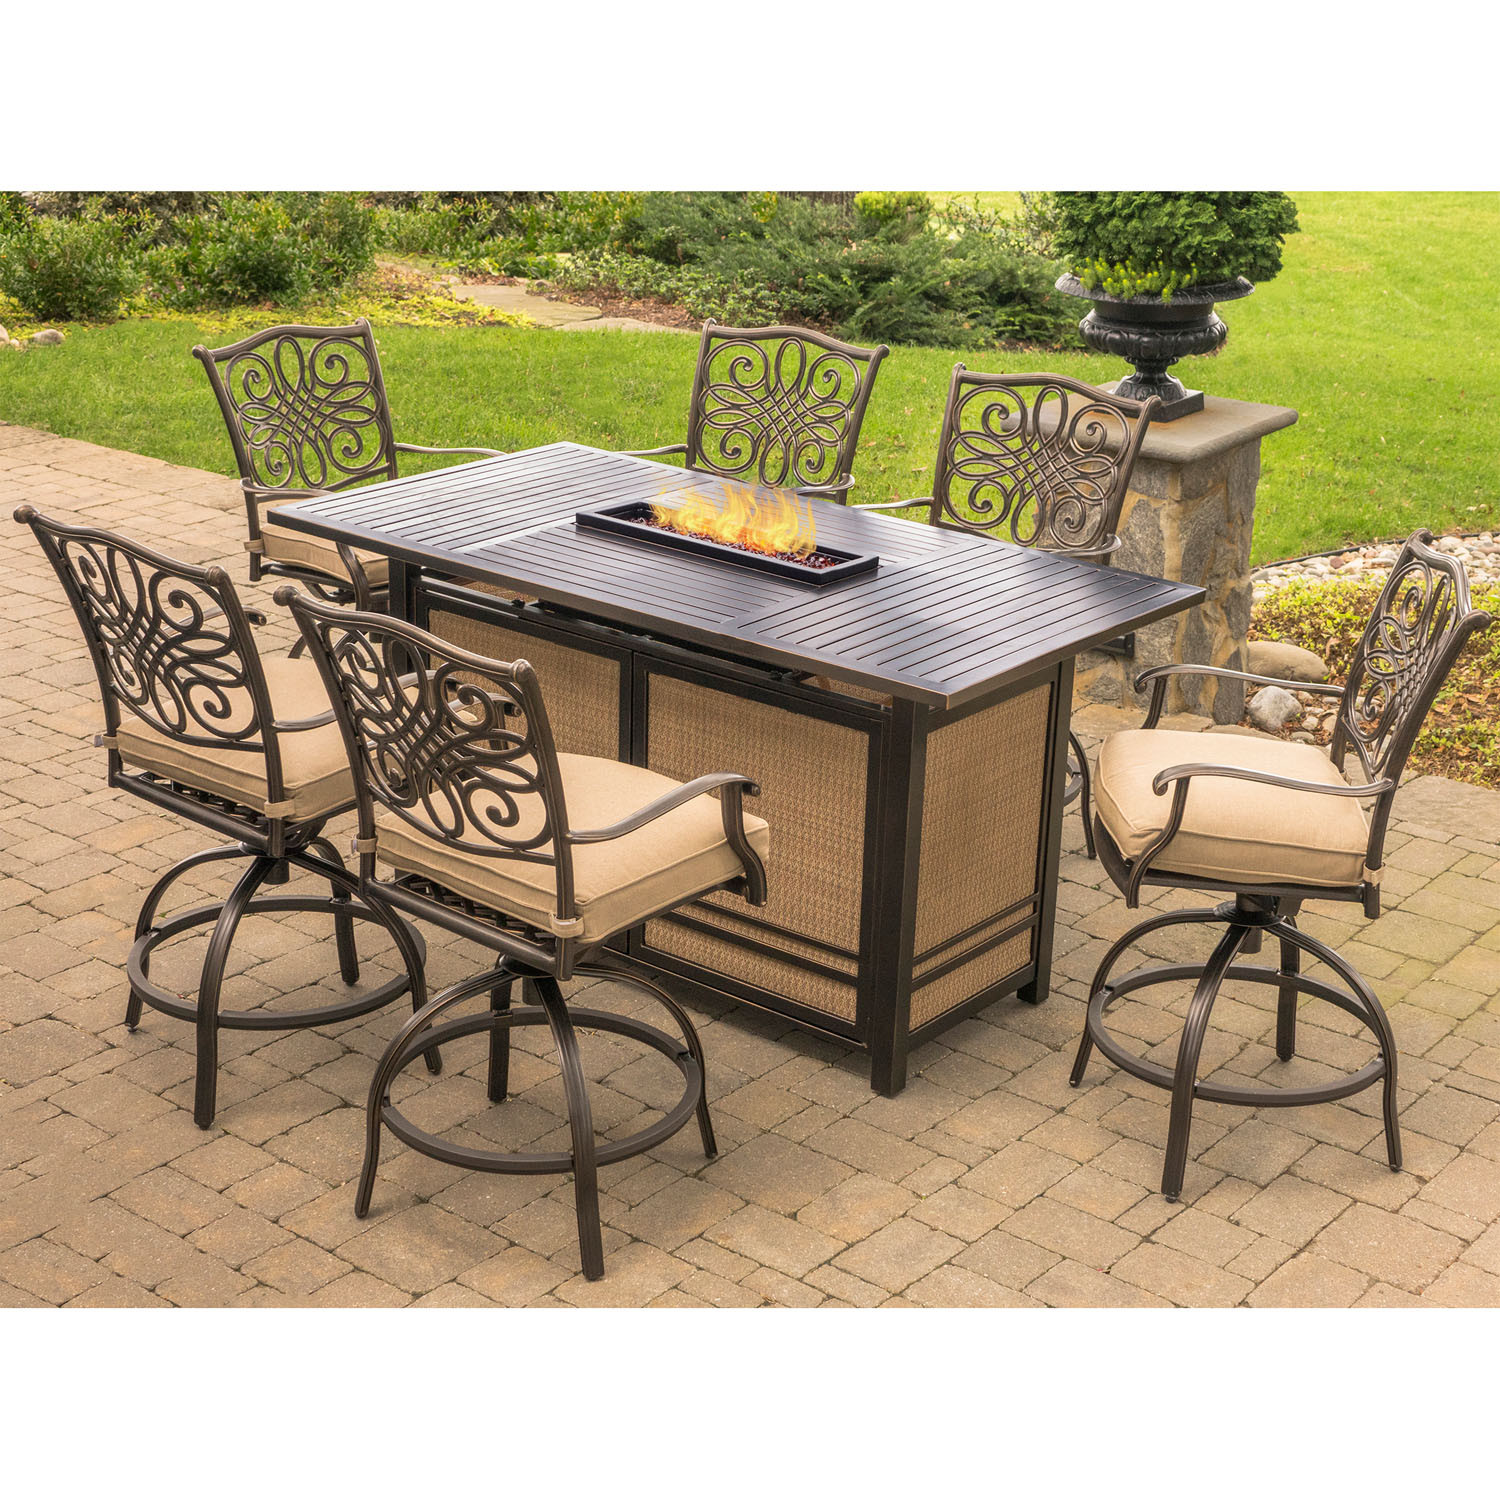 Propane Fire Pit Table Set  Hanover Traditions 7 Piece High Dining Set in Tan with